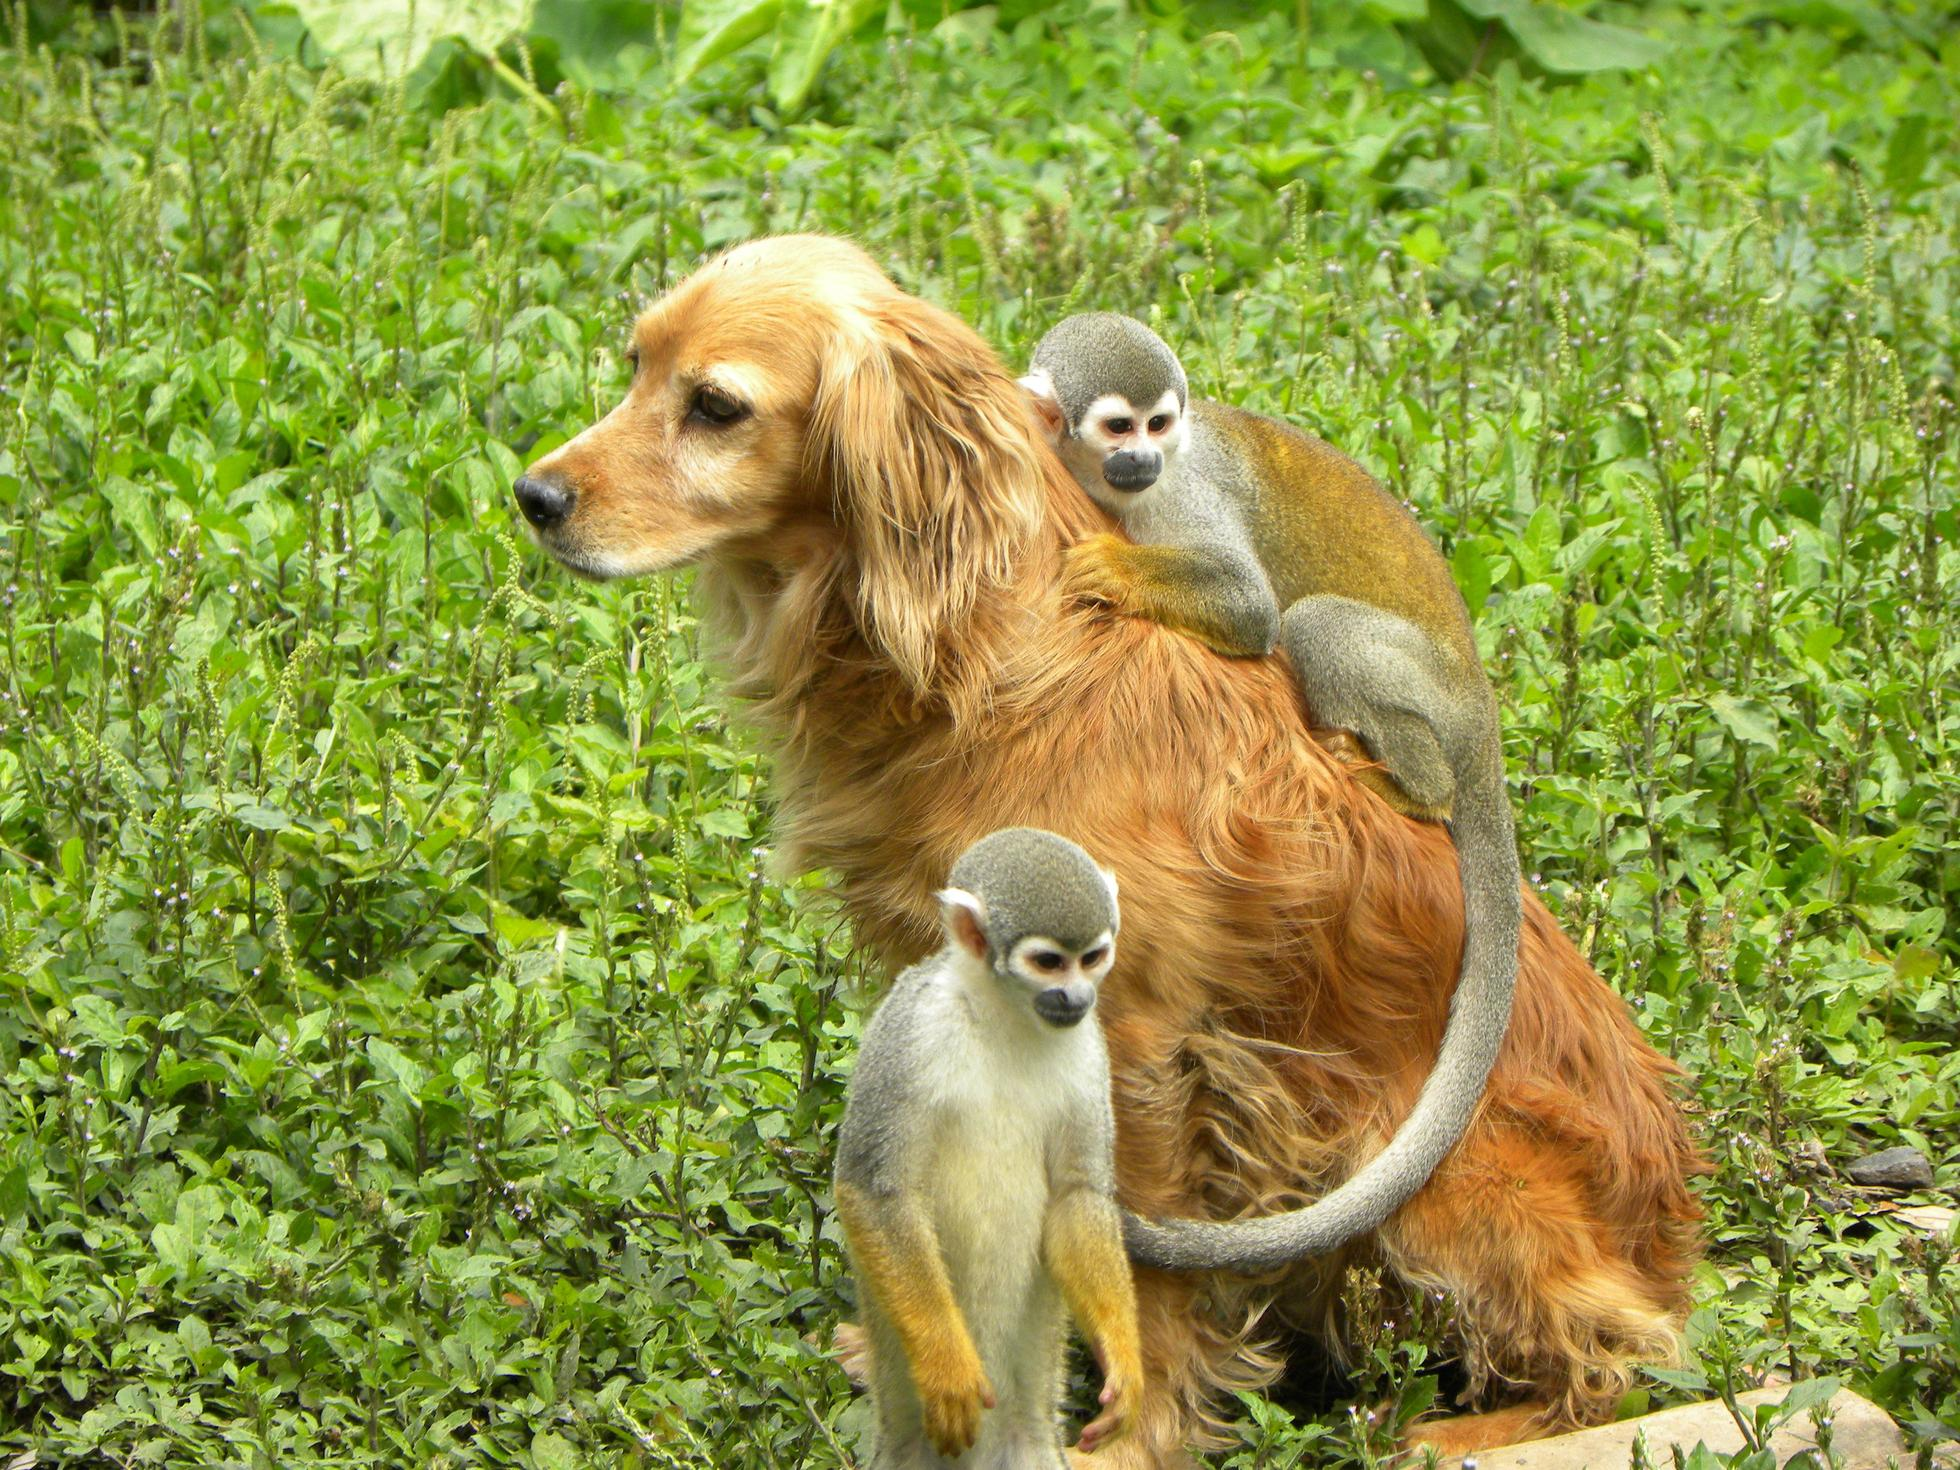 Squirrel Monkey Backgrounds on Wallpapers Vista